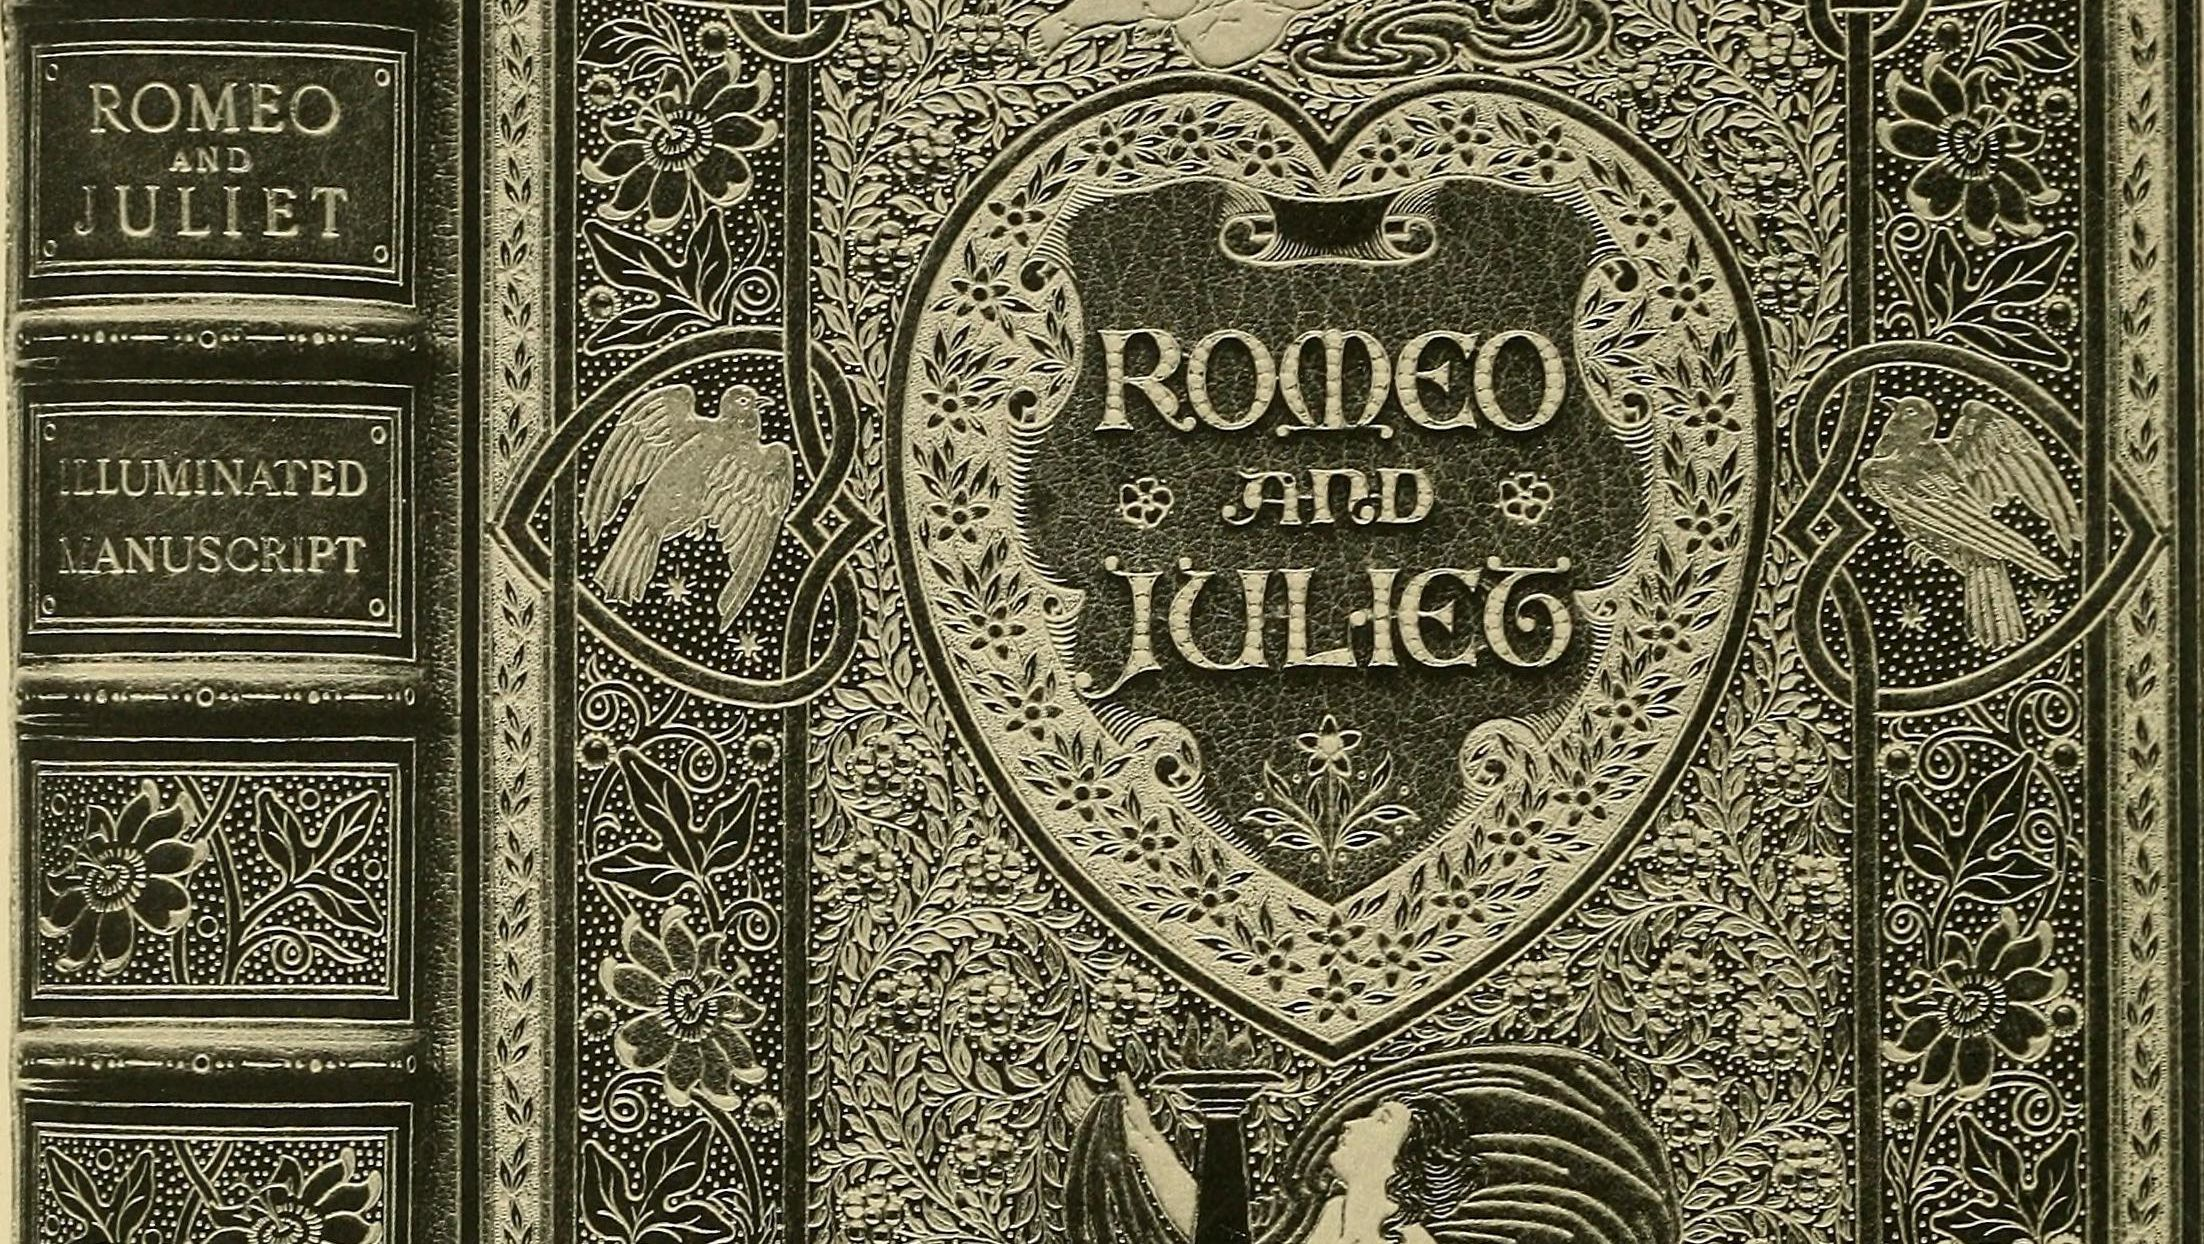 12 Facts About William Shakespeare's Romeo and Juliet